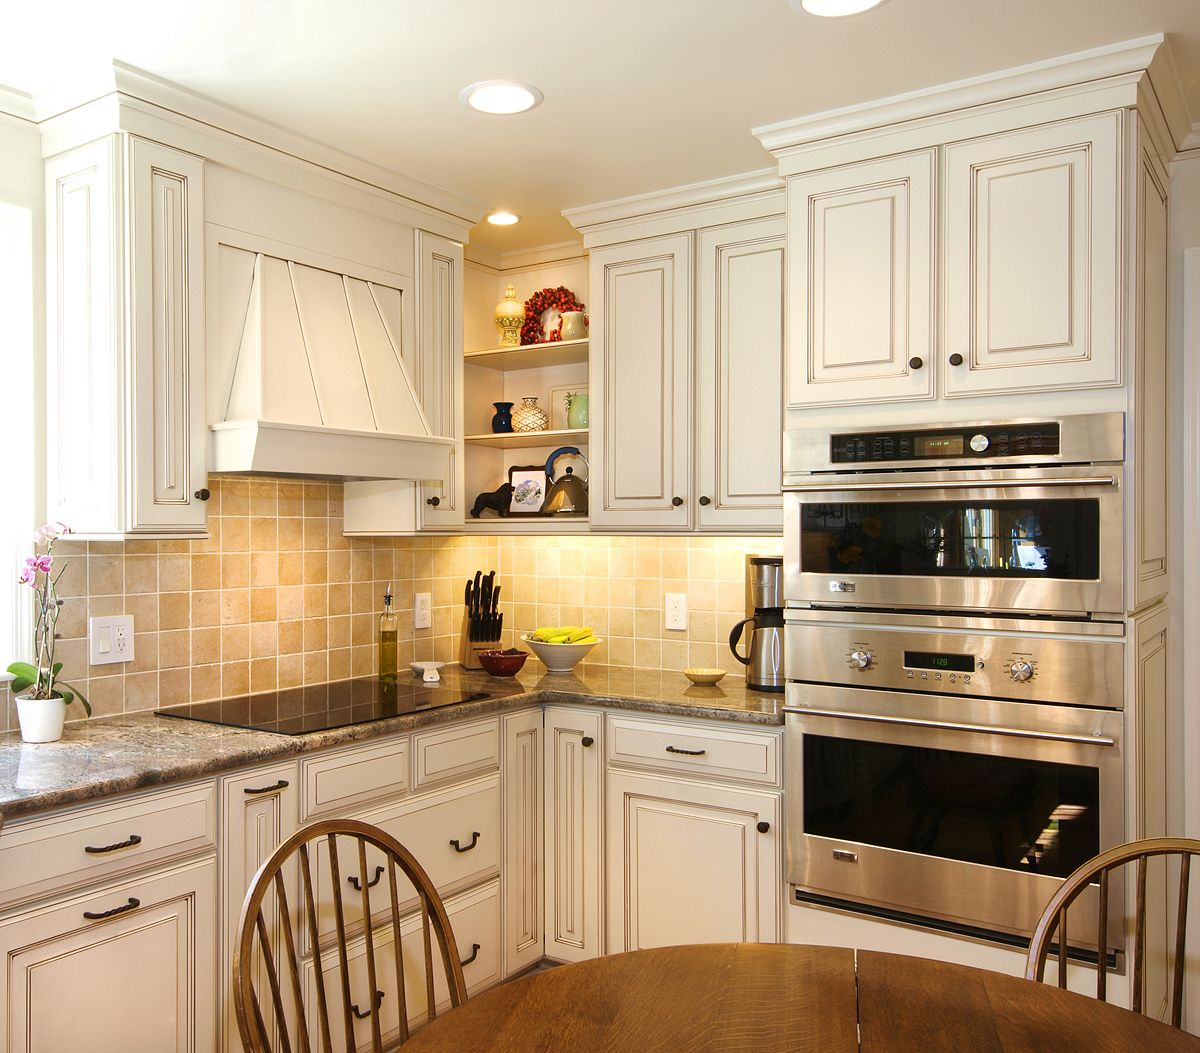 Summer Hill, MD kitchen by bel air construction (With